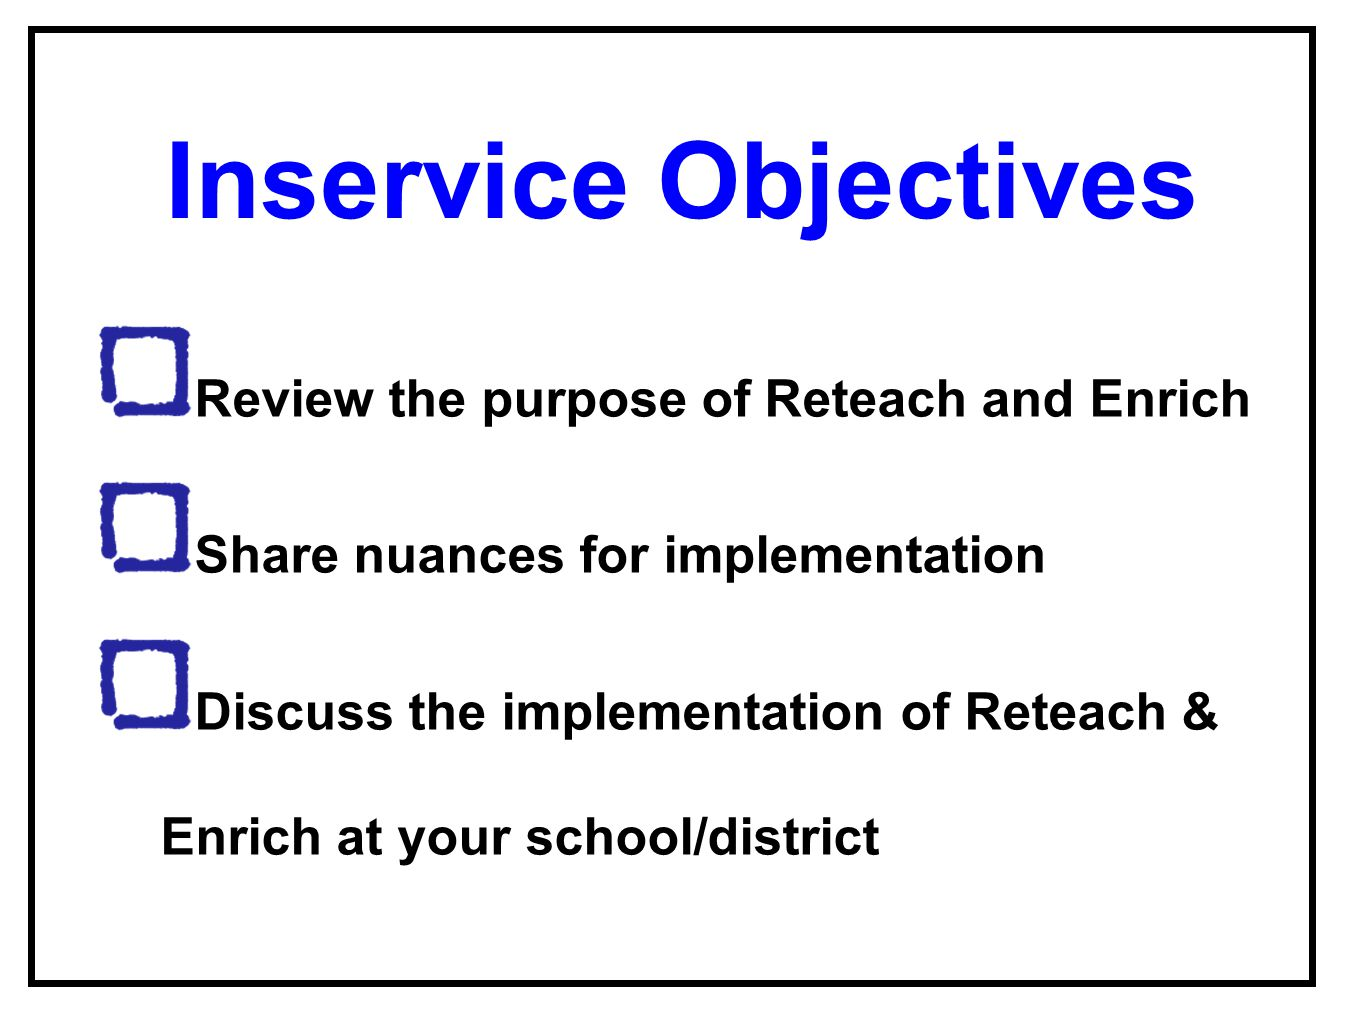 Inservice Objectives Review the purpose of Reteach and Enrich Share nuances for implementation Discuss the implementation of Reteach & Enrich at your